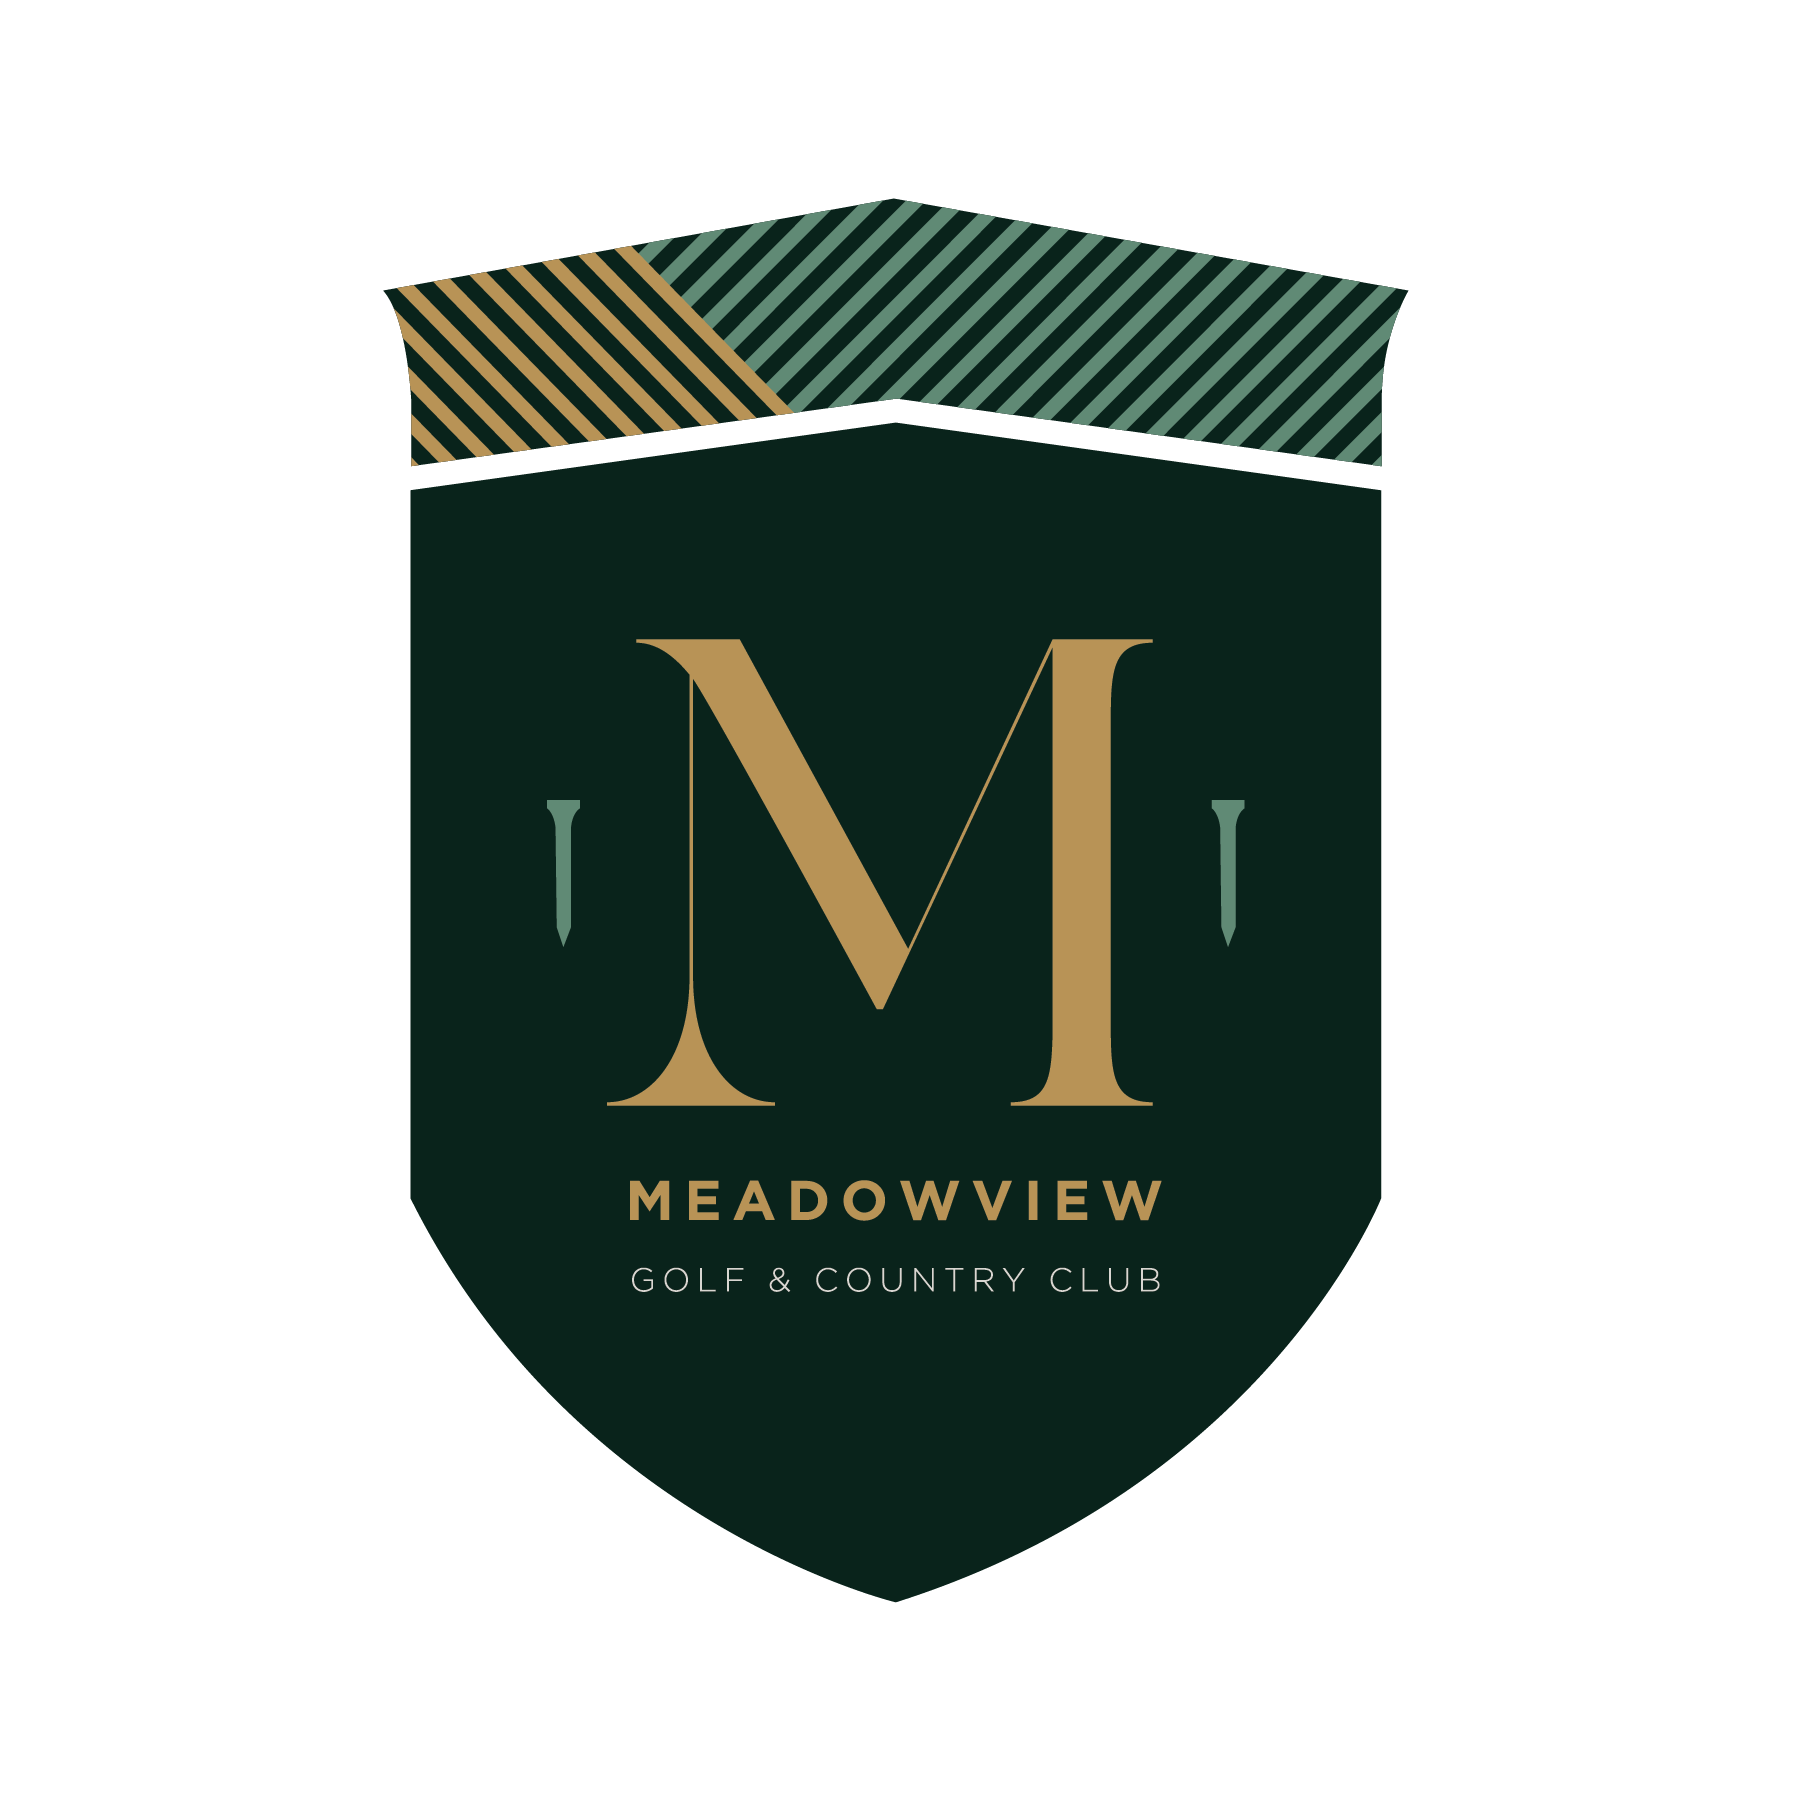 Meadowview Golf Club